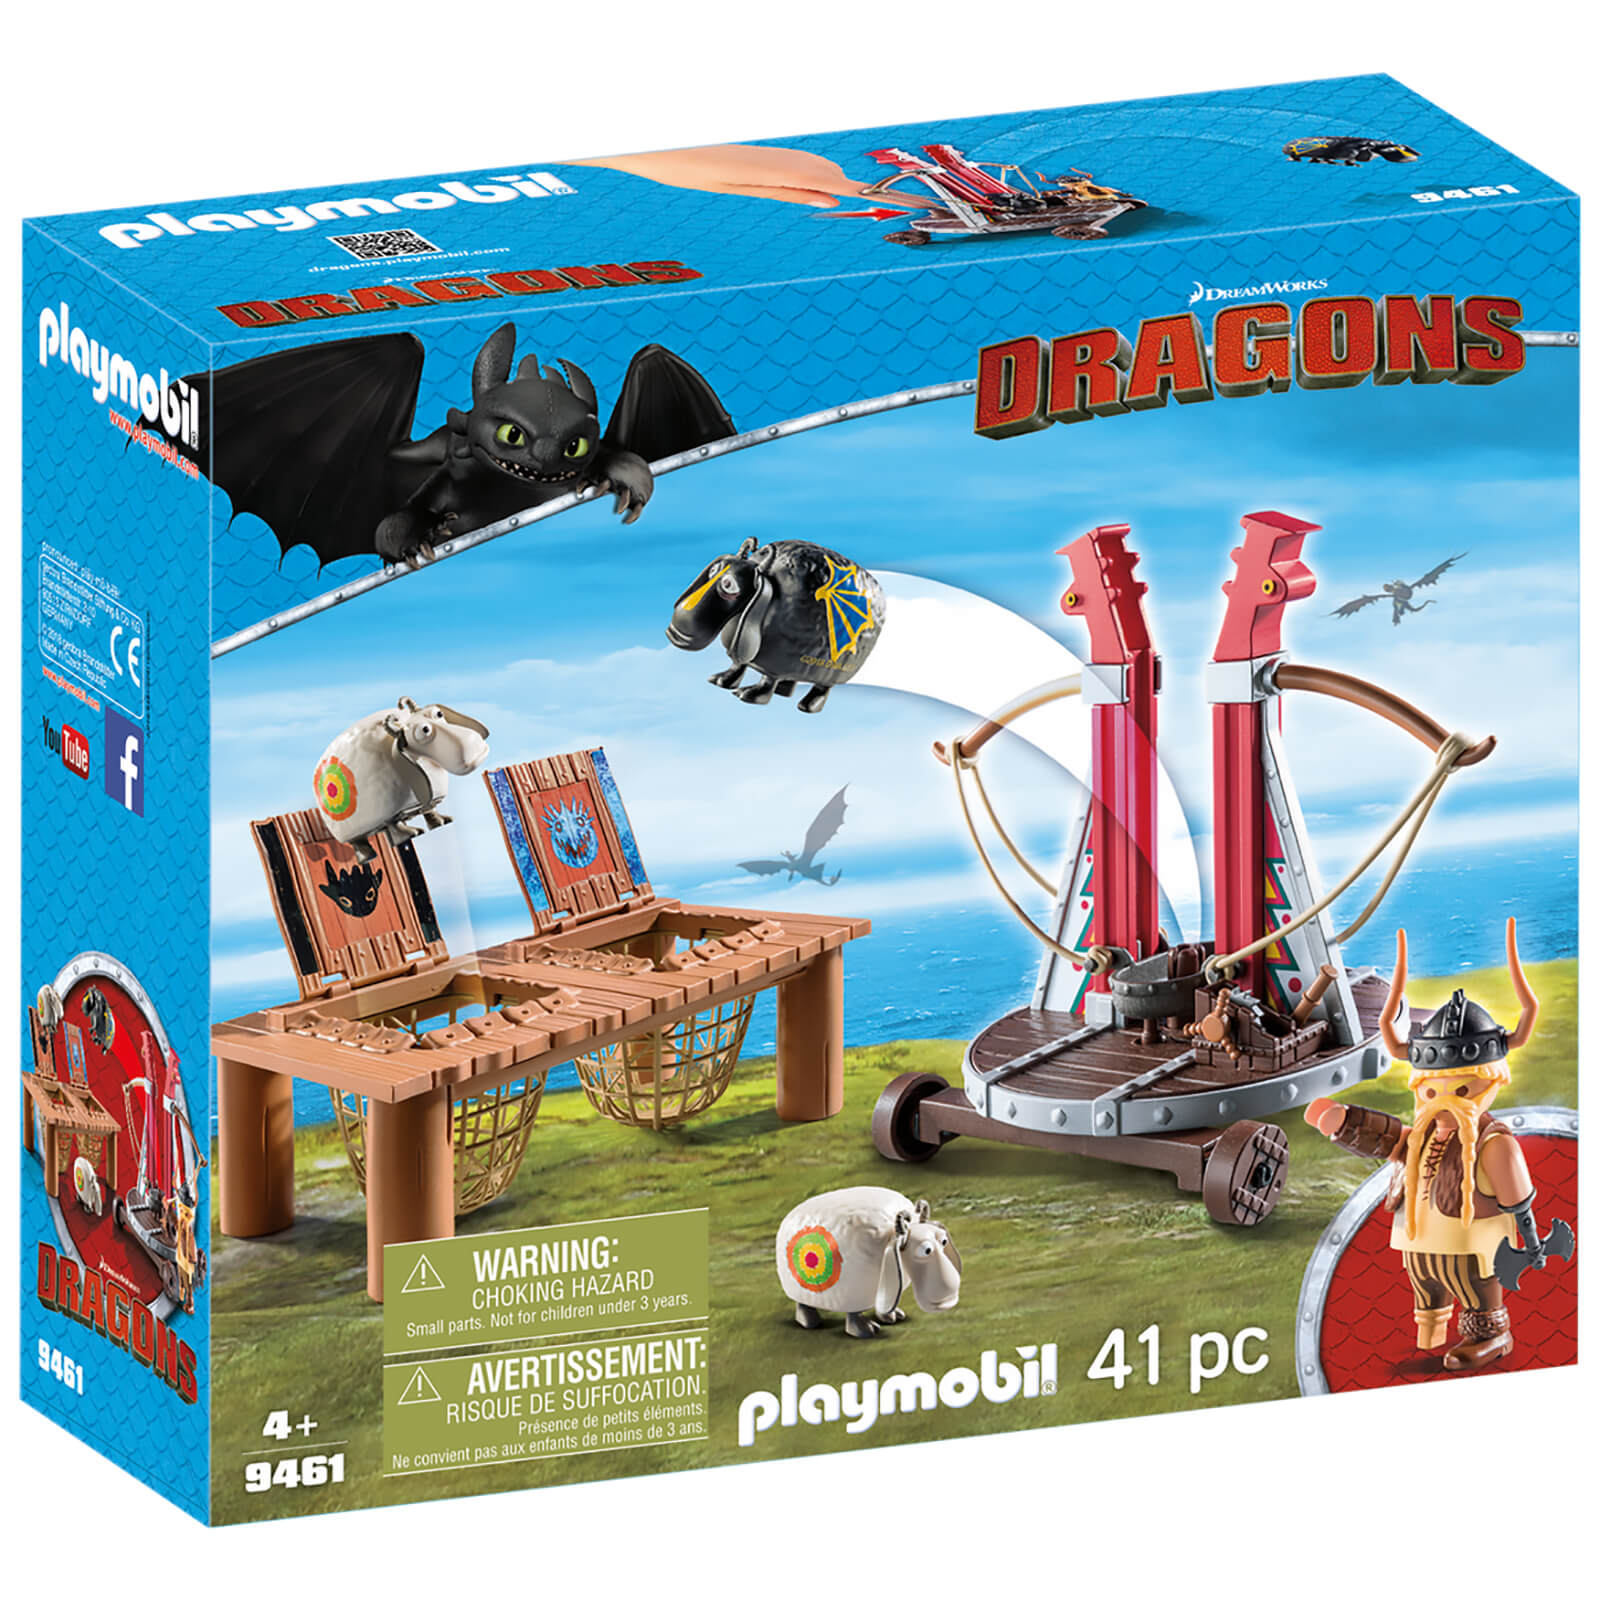 Playmobil DreamWorks Dragons Gobber The Belch With Sheep Sling (9461)